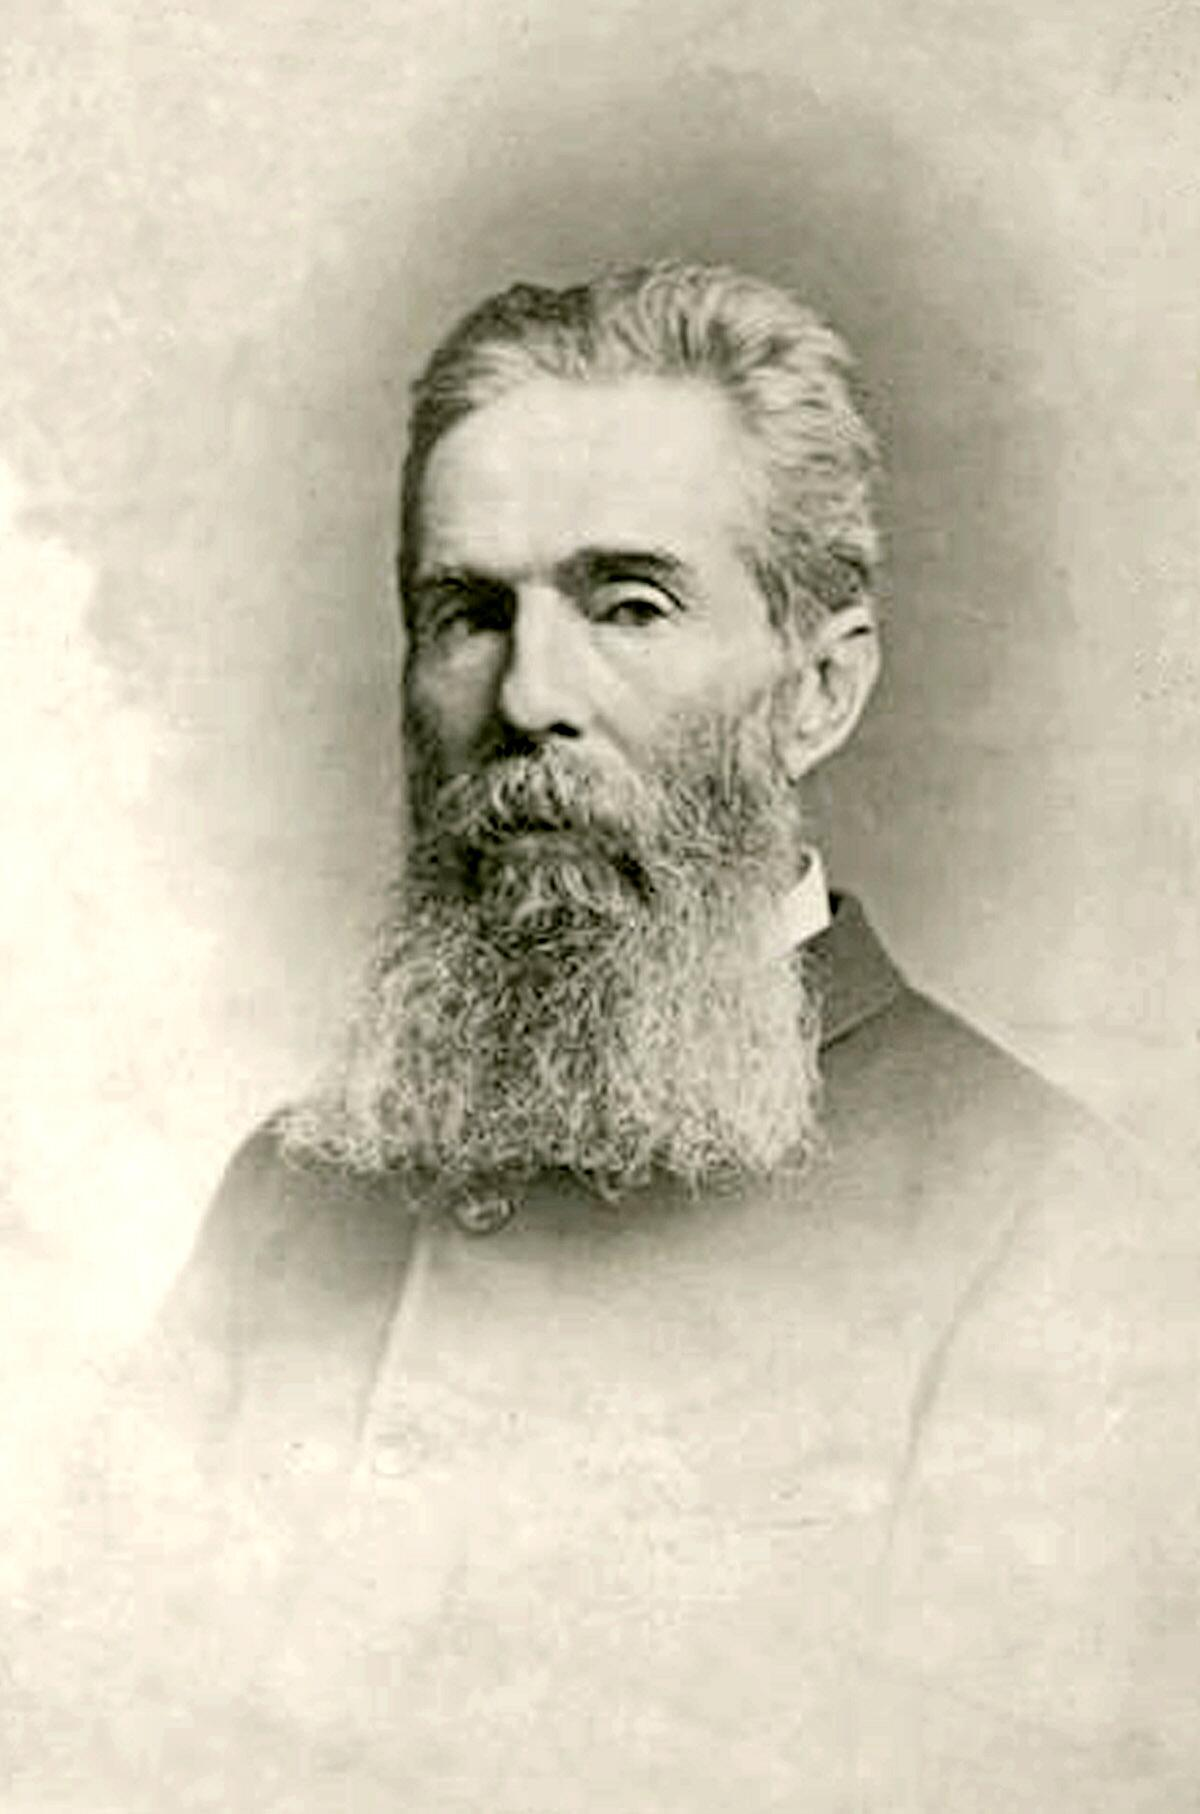 Herman Melville (1819-1891)1885 portrait by Rockwood, 17 Union Square (West), New York; George Gardner, photographer.  This photograph shows Herman Melville at the time of his retirement as a customs inspector at the Port of New York.